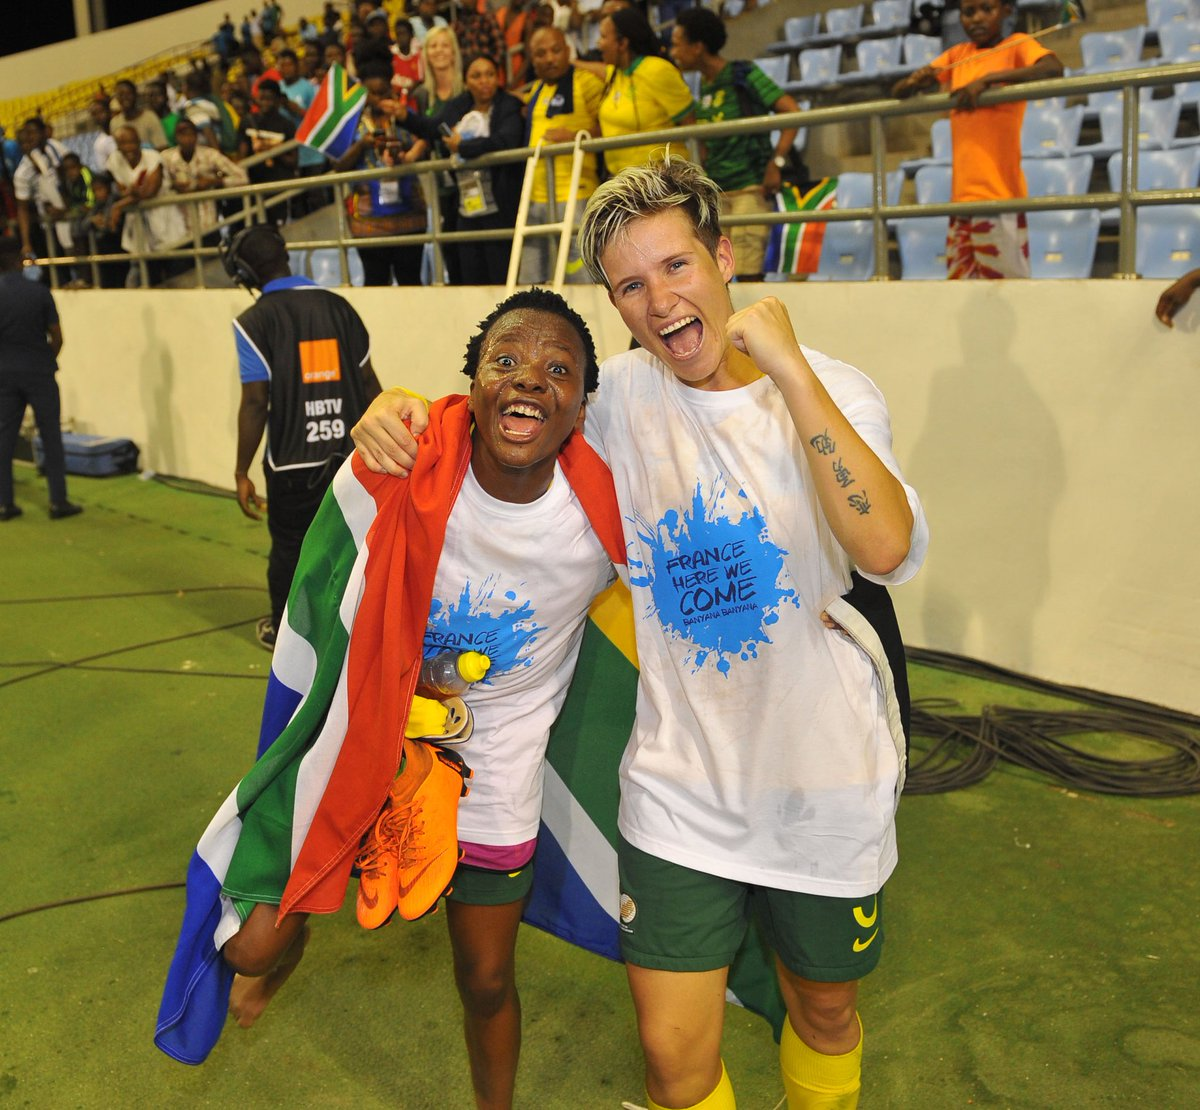 Banyana Banyana striker Thembi Kgatlana and Captain Janine van Wyk celebrate their win against Mali in the AWCON semi-final and qualifying for the FIFA Women's World Cup in France next year.